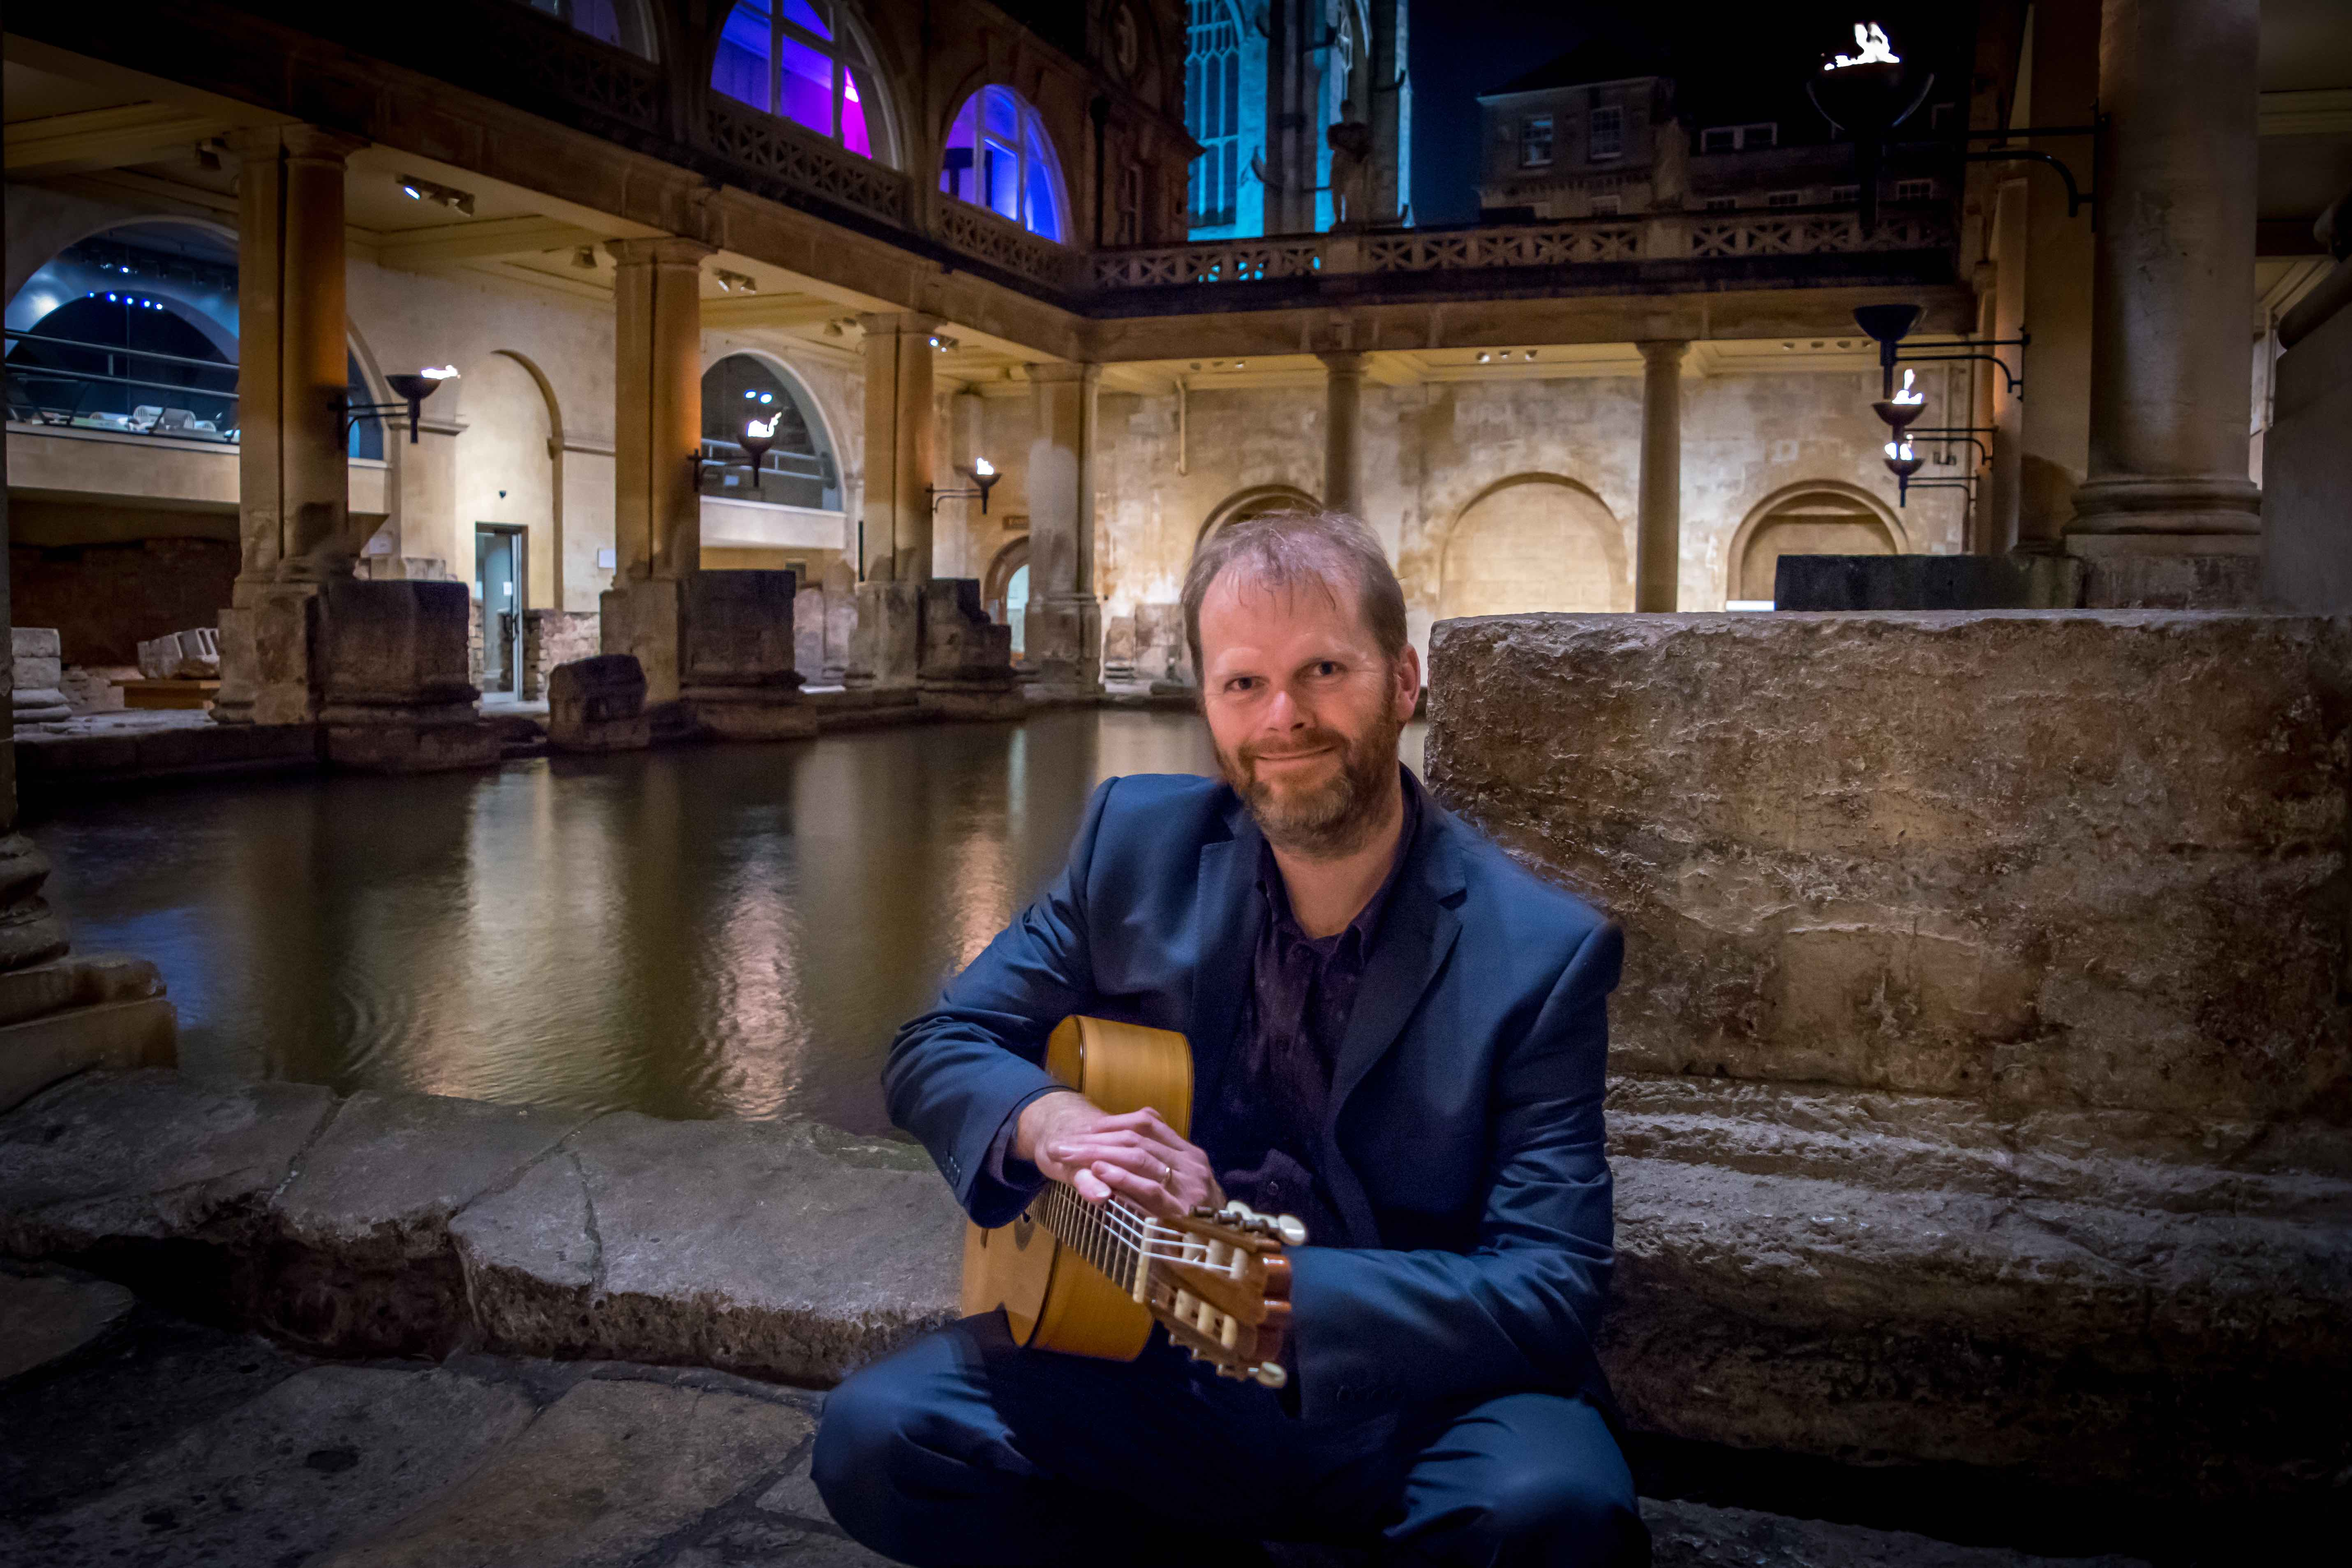 Wedding Guitarist in Roman Baths